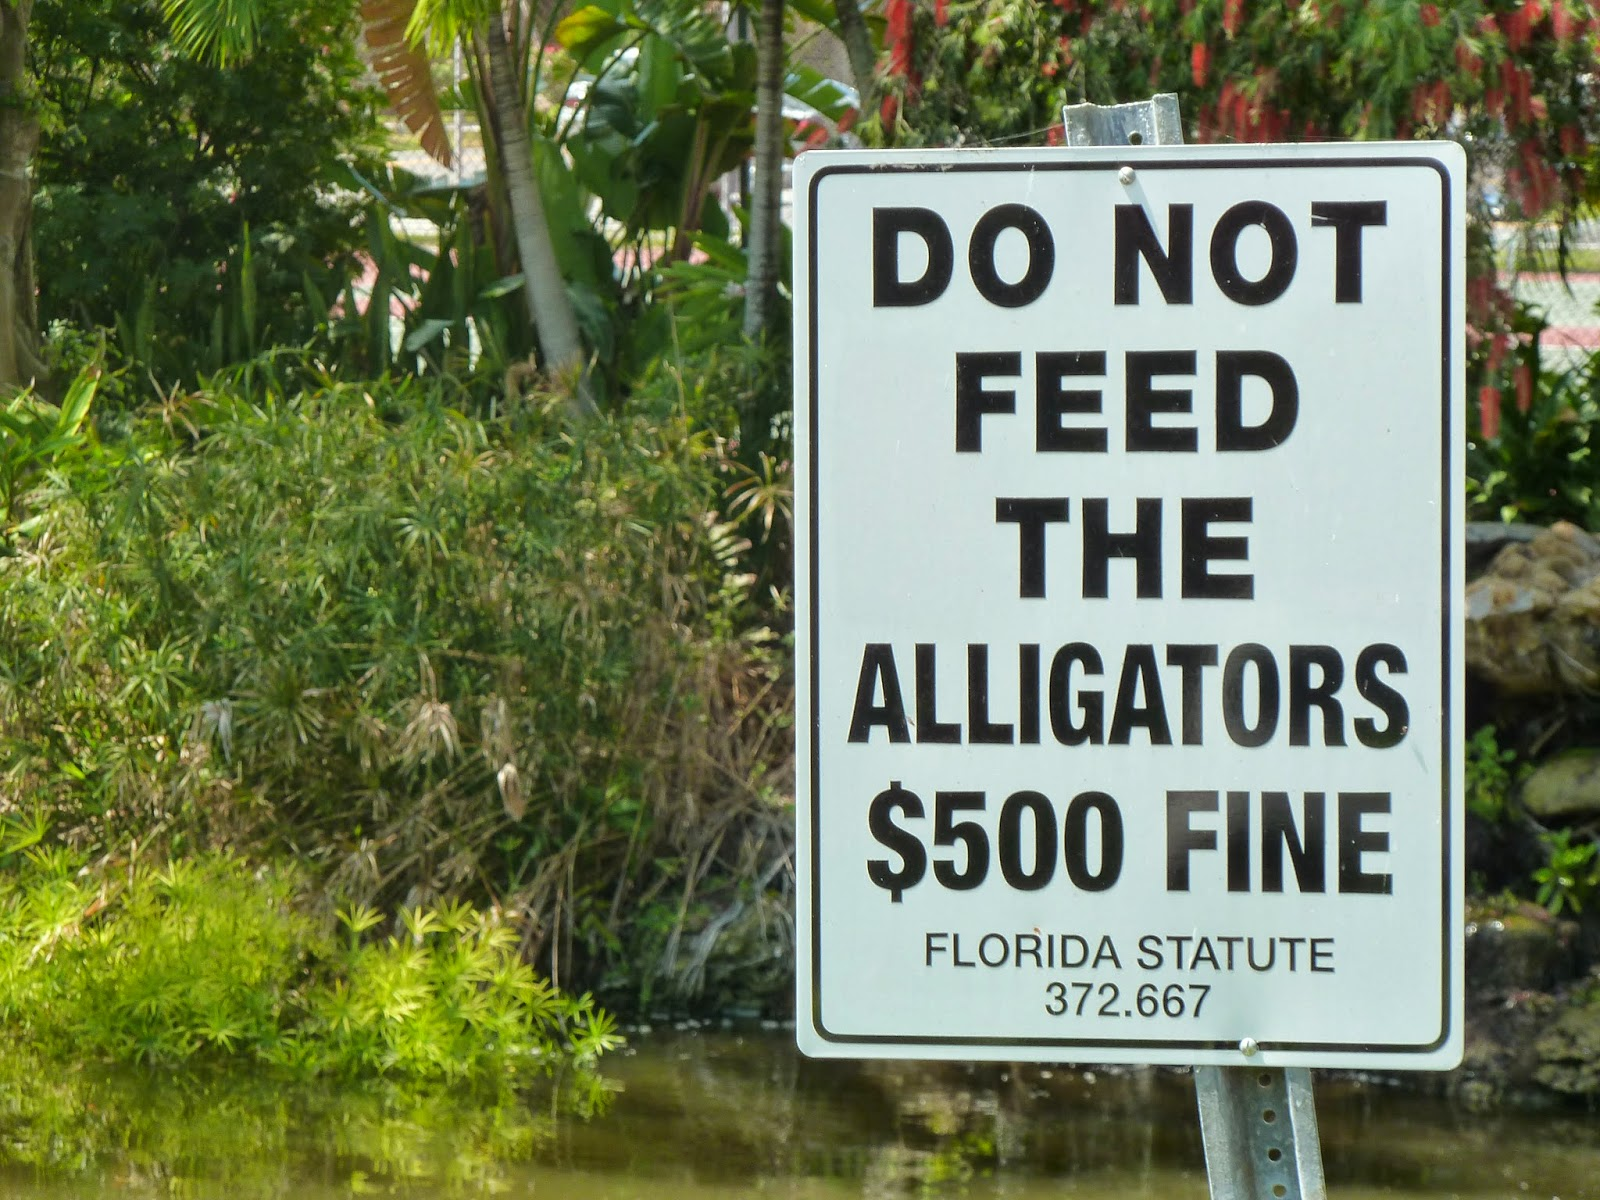 alligator warning dangers in foreign places signs or not